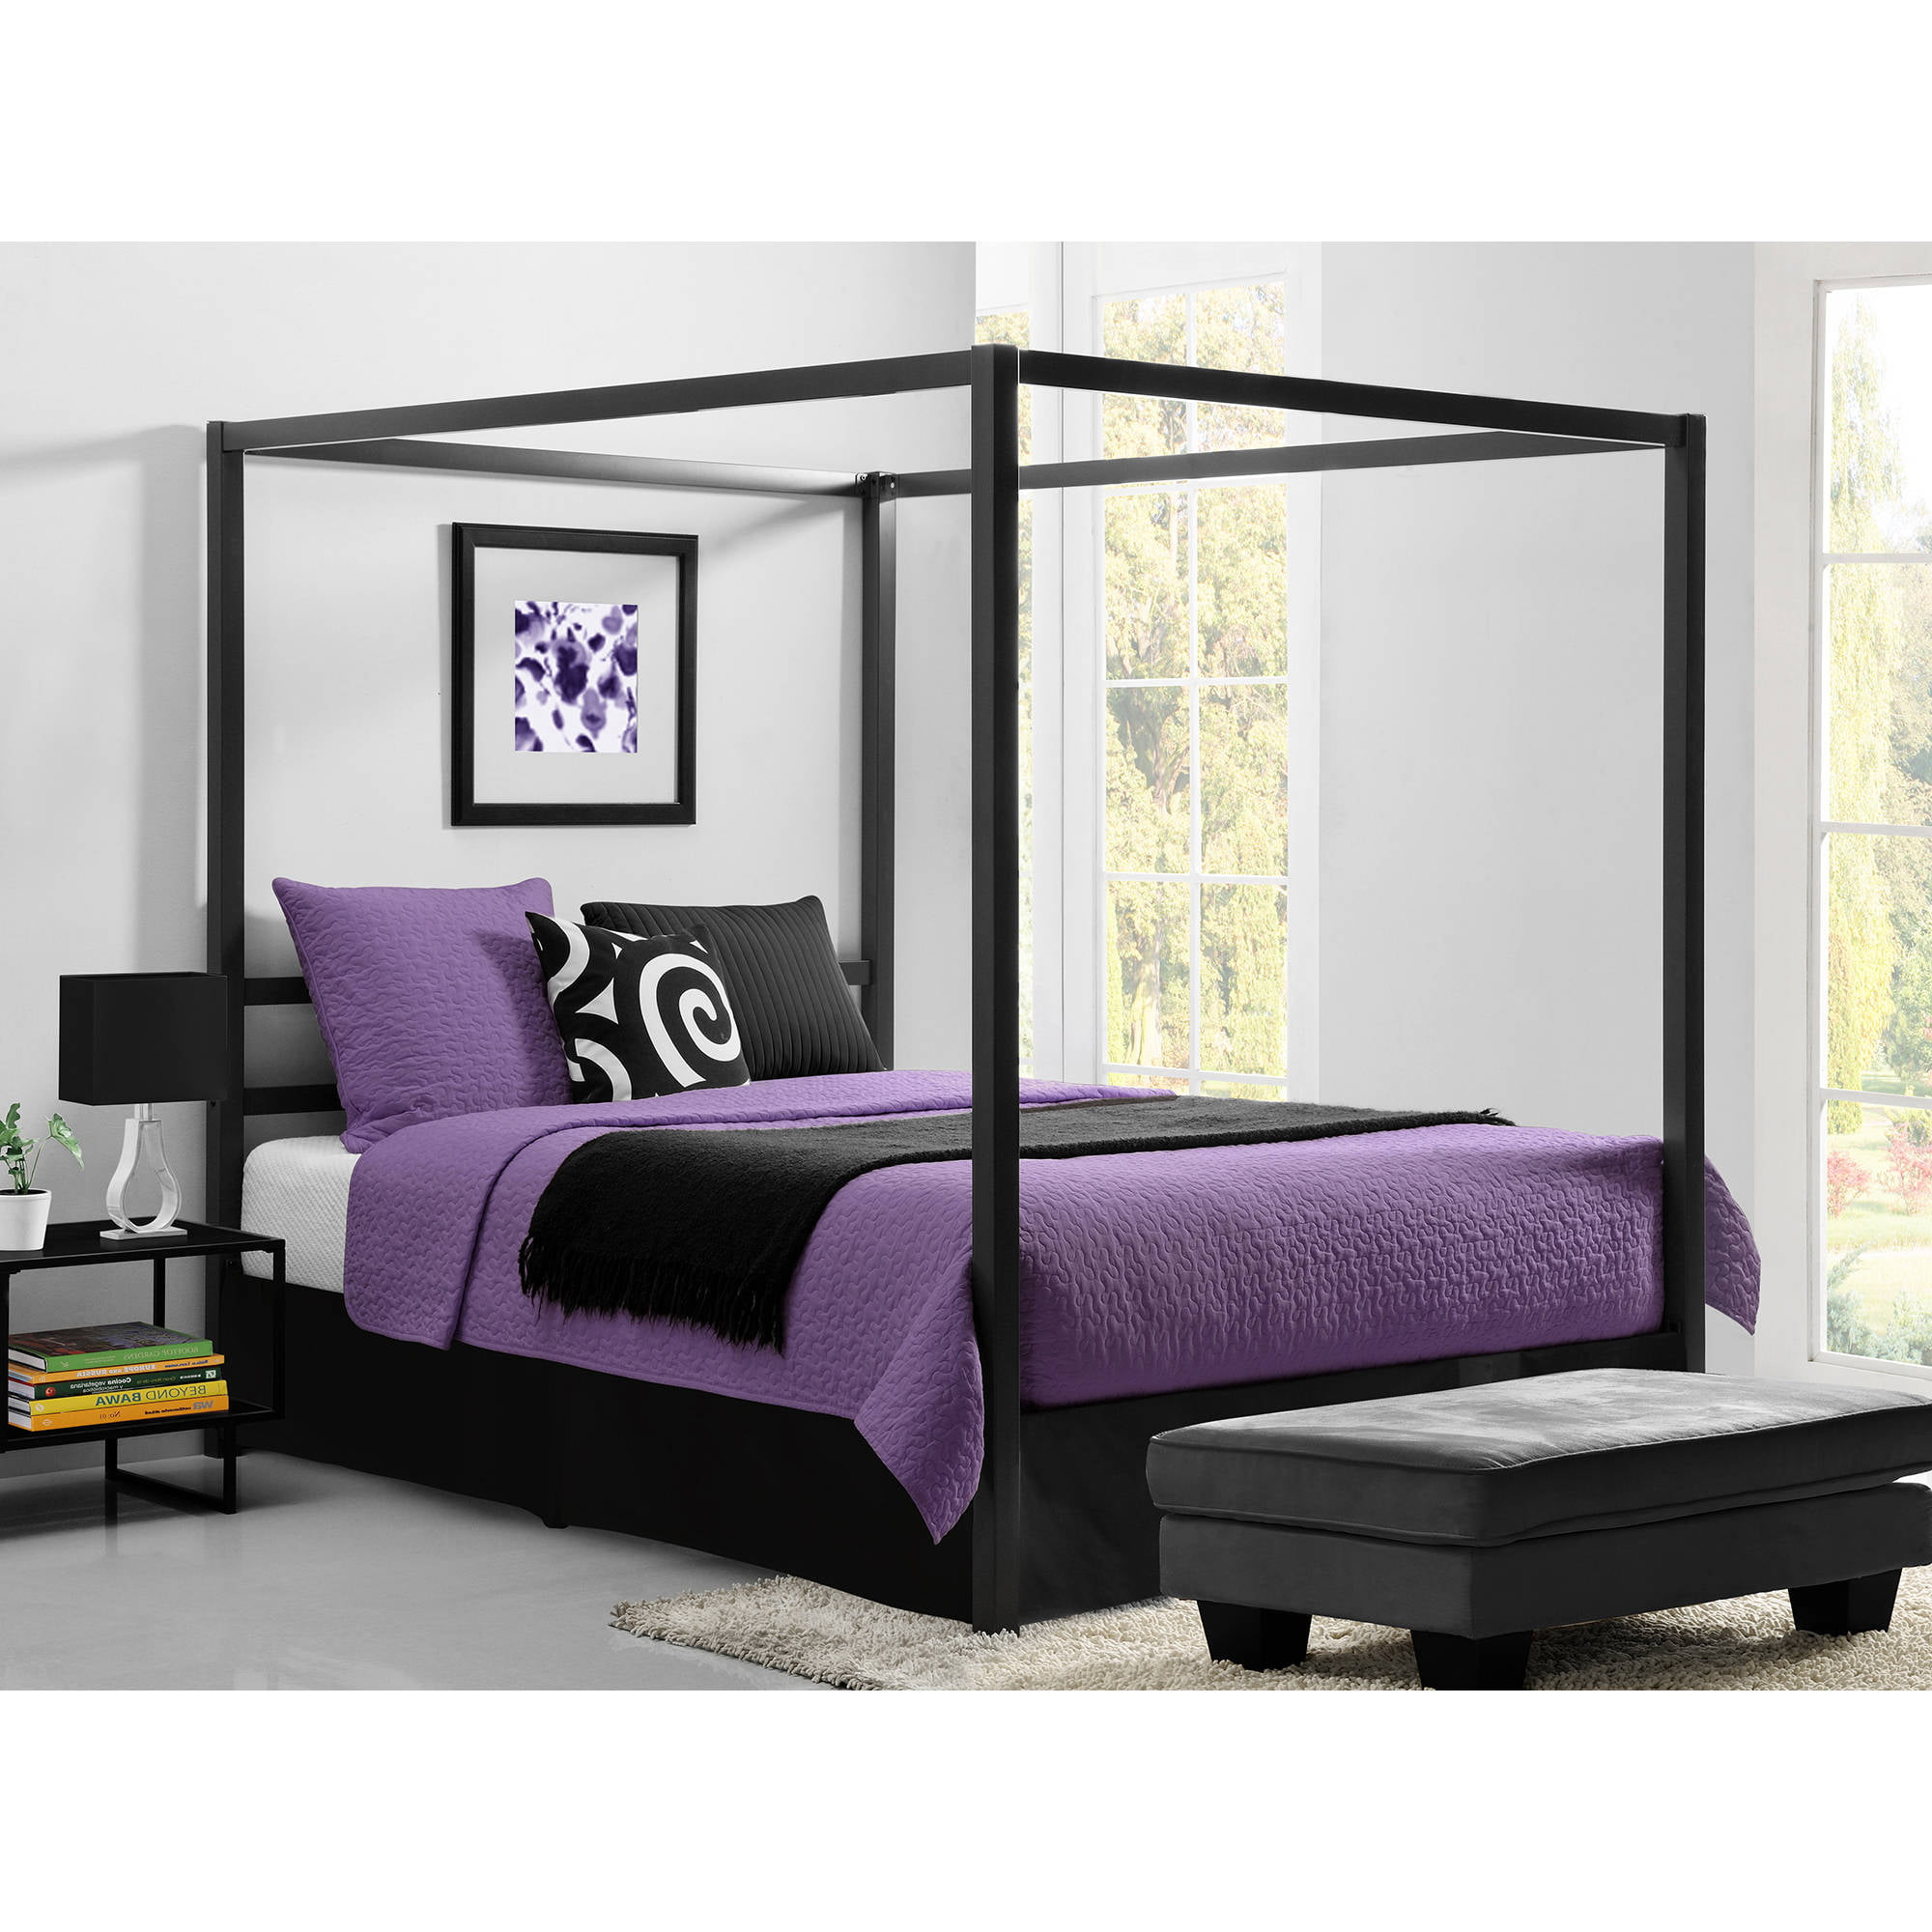 DHP Modern Metal Canopy Bed, Multiple Colors and Sizes by Dorel Home Products